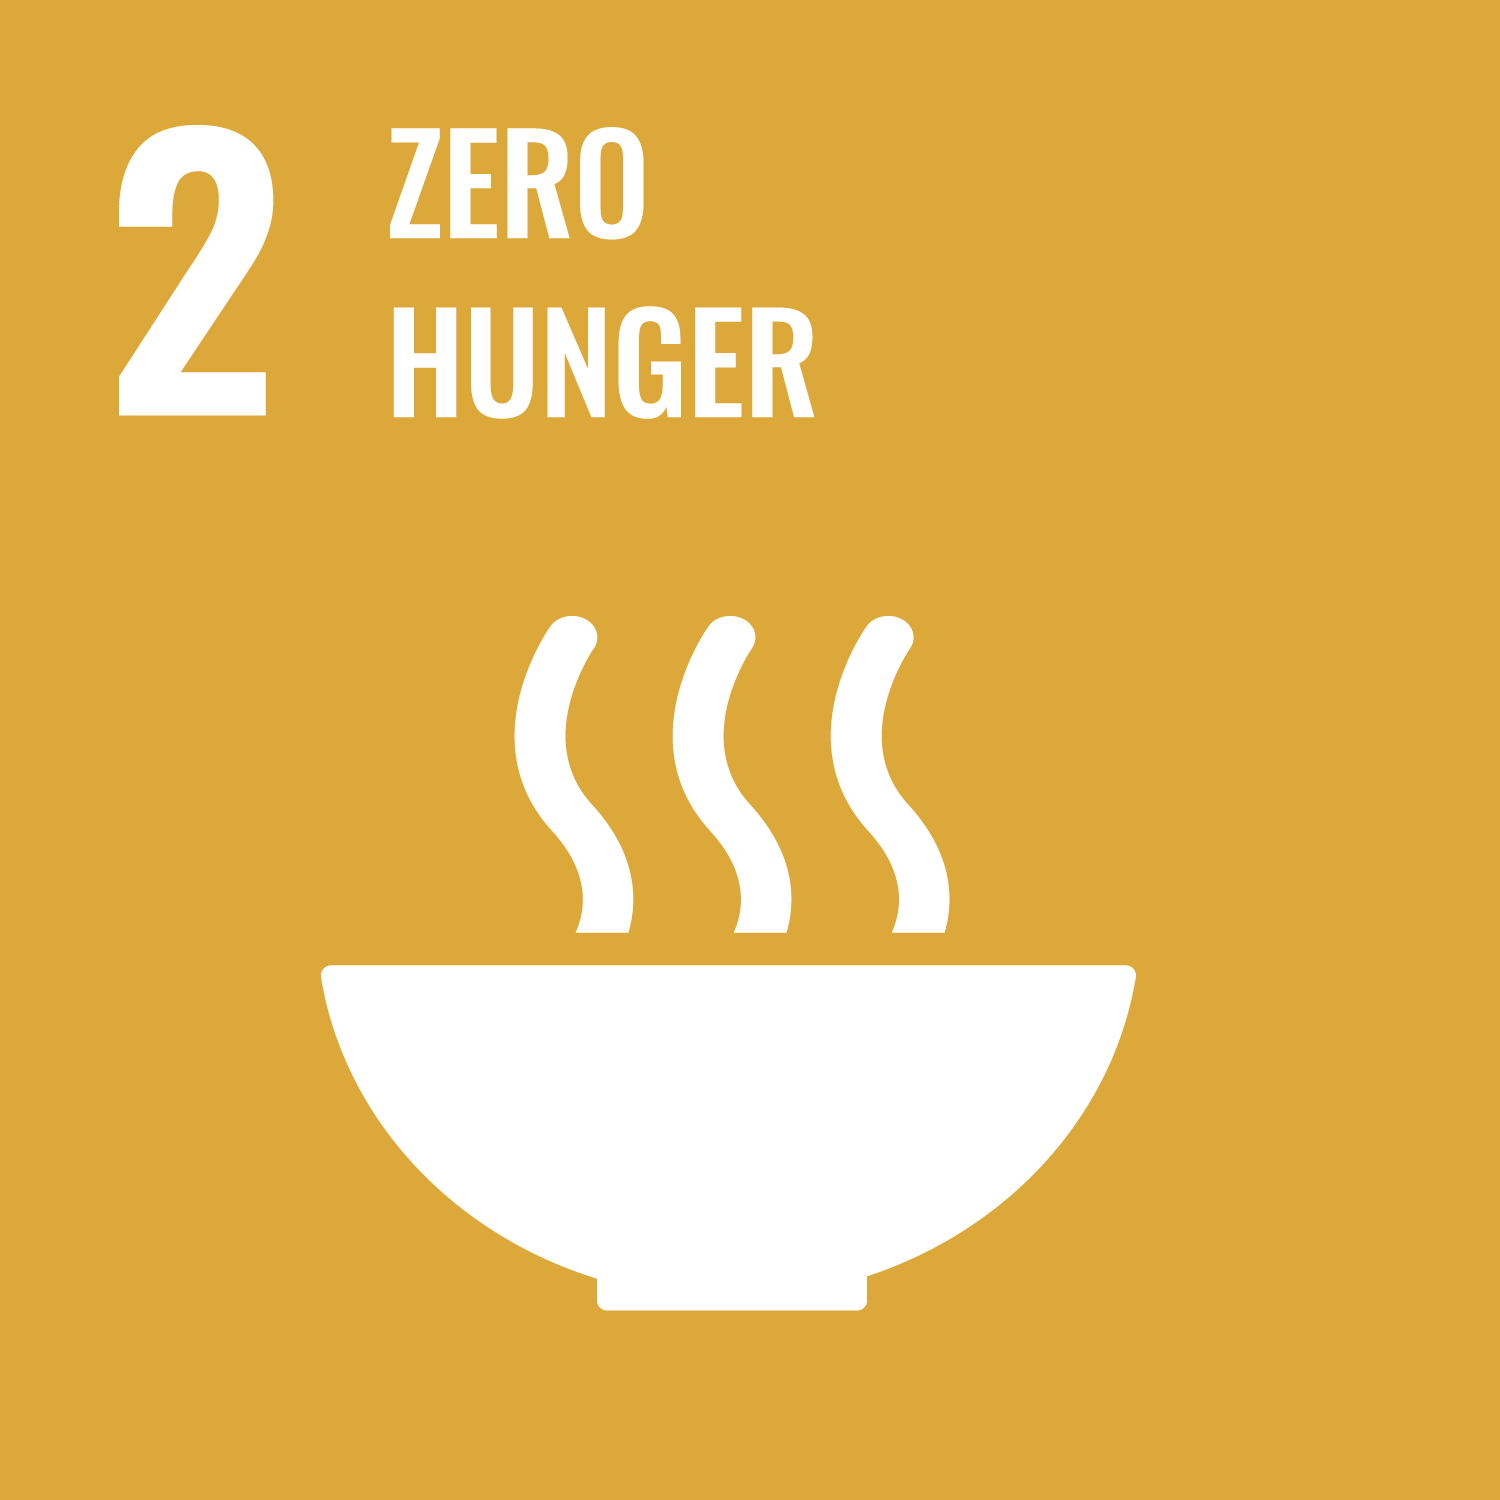 United Nations Sustainable Development Goal 02 - Zero Hunger